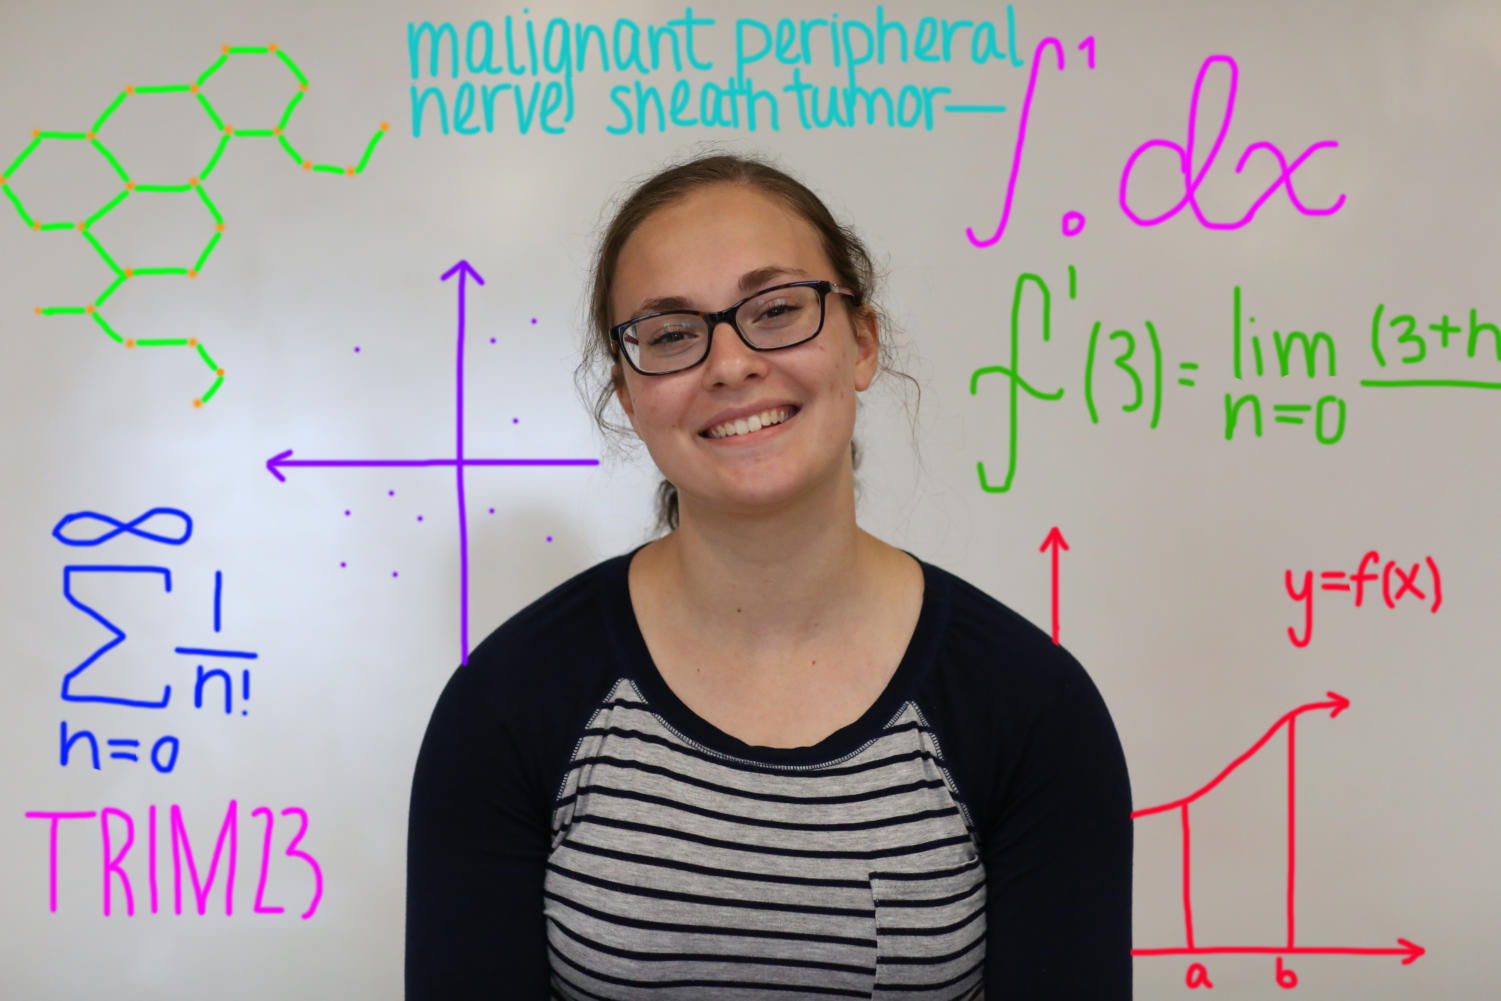 Senior Emily Ristevski continues her heavy workload from the summer into her senior year with classes like; AP Calculus, Biomedical Innovations, AP Biology and AP Literature and Composition.